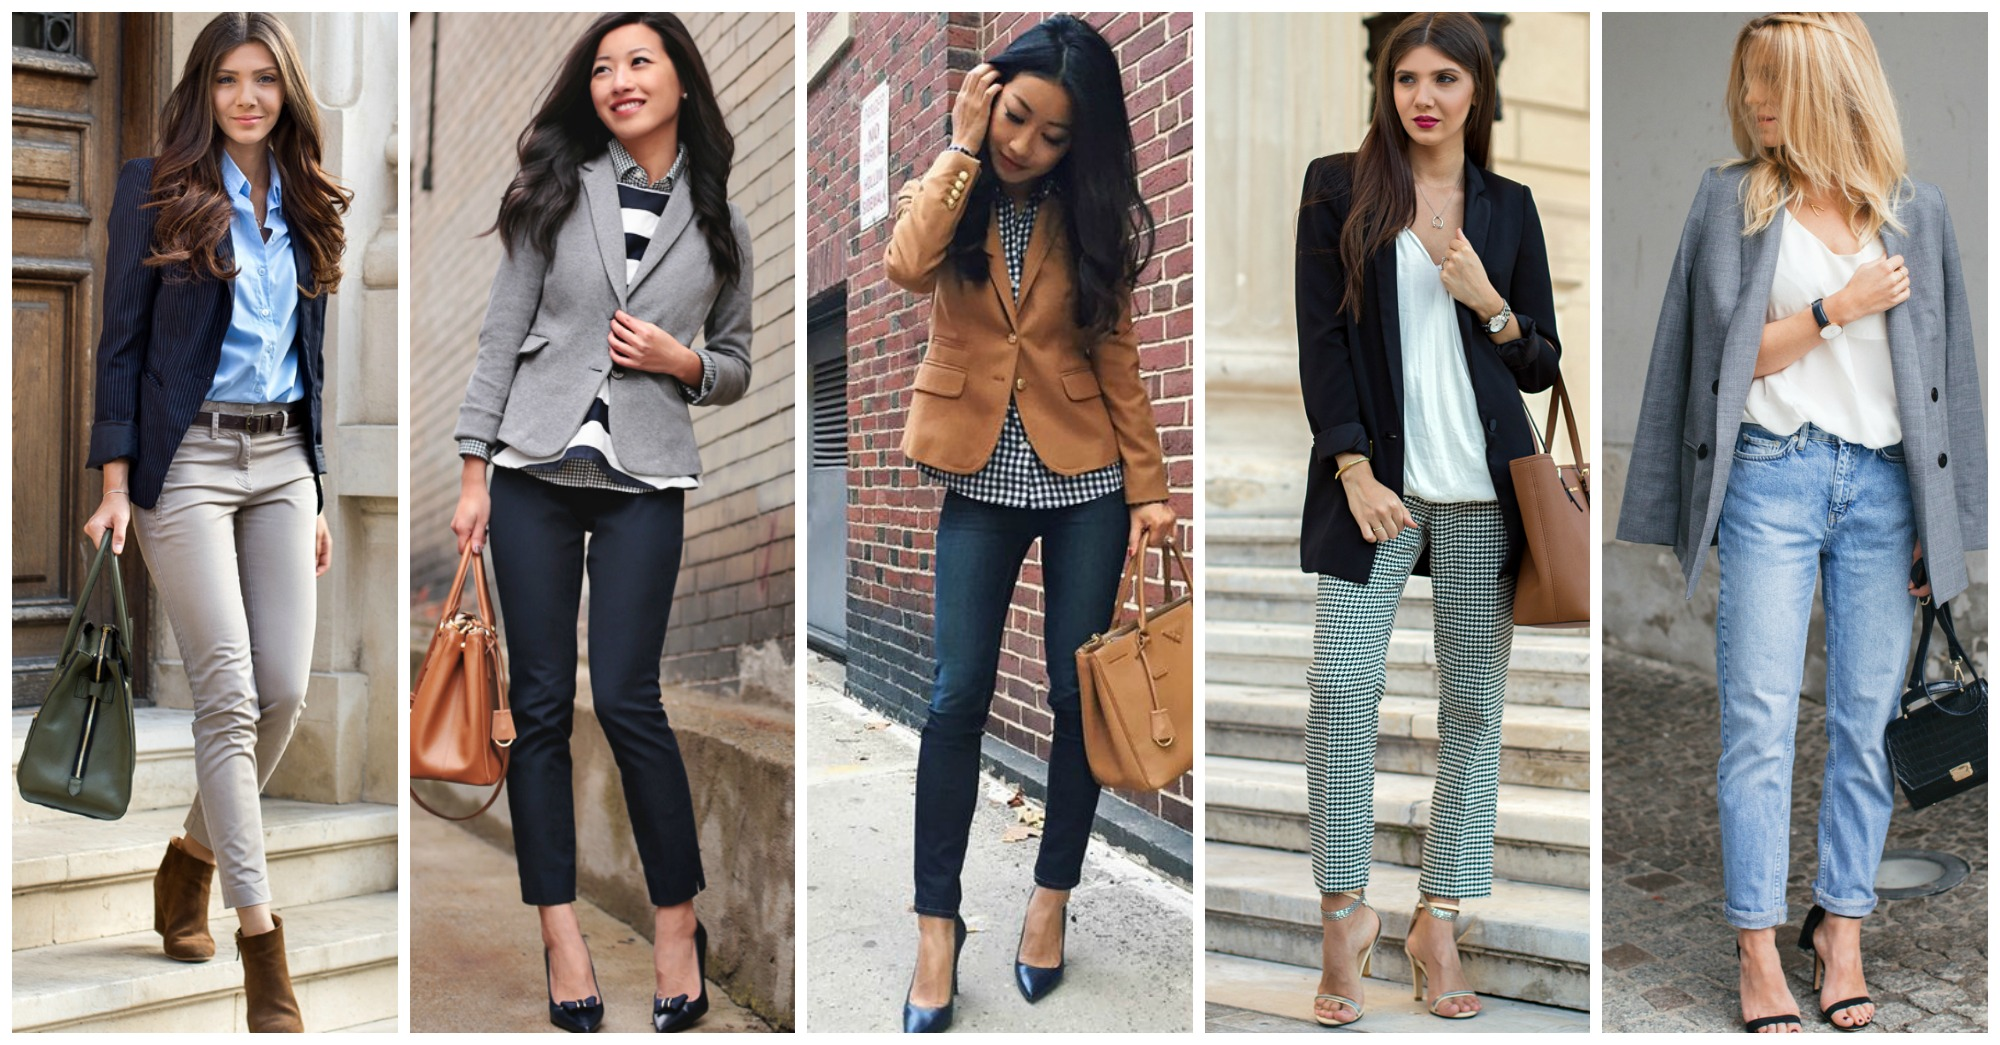 Stylish Office 12 Stylish Office Outfits To Copy This Fall